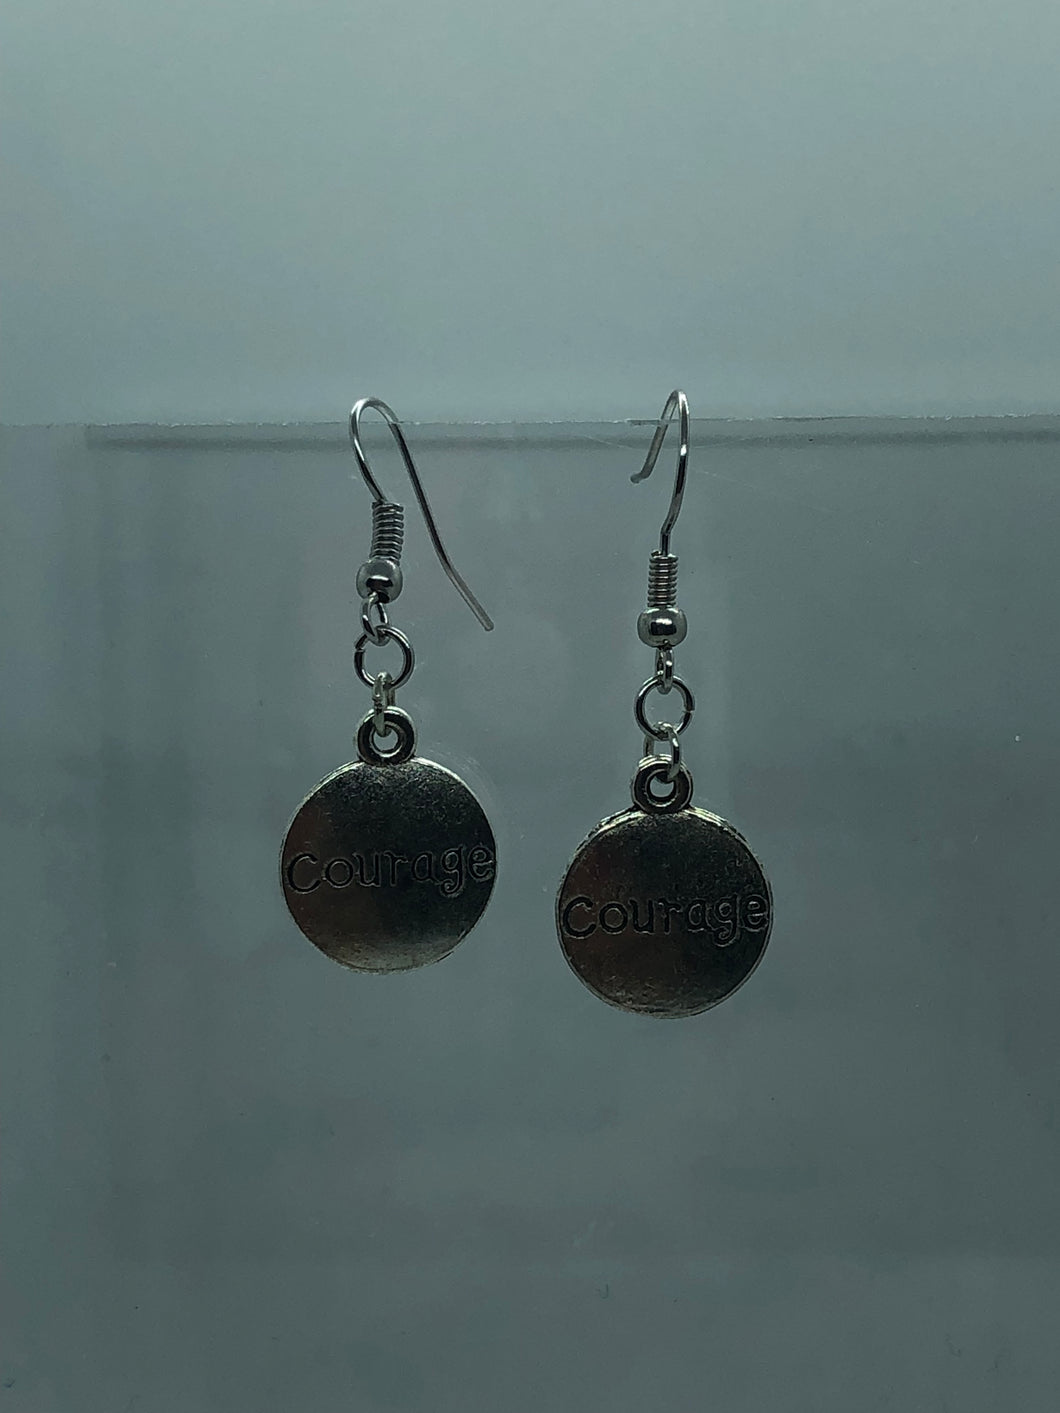 Silver Courage Coin Earrings